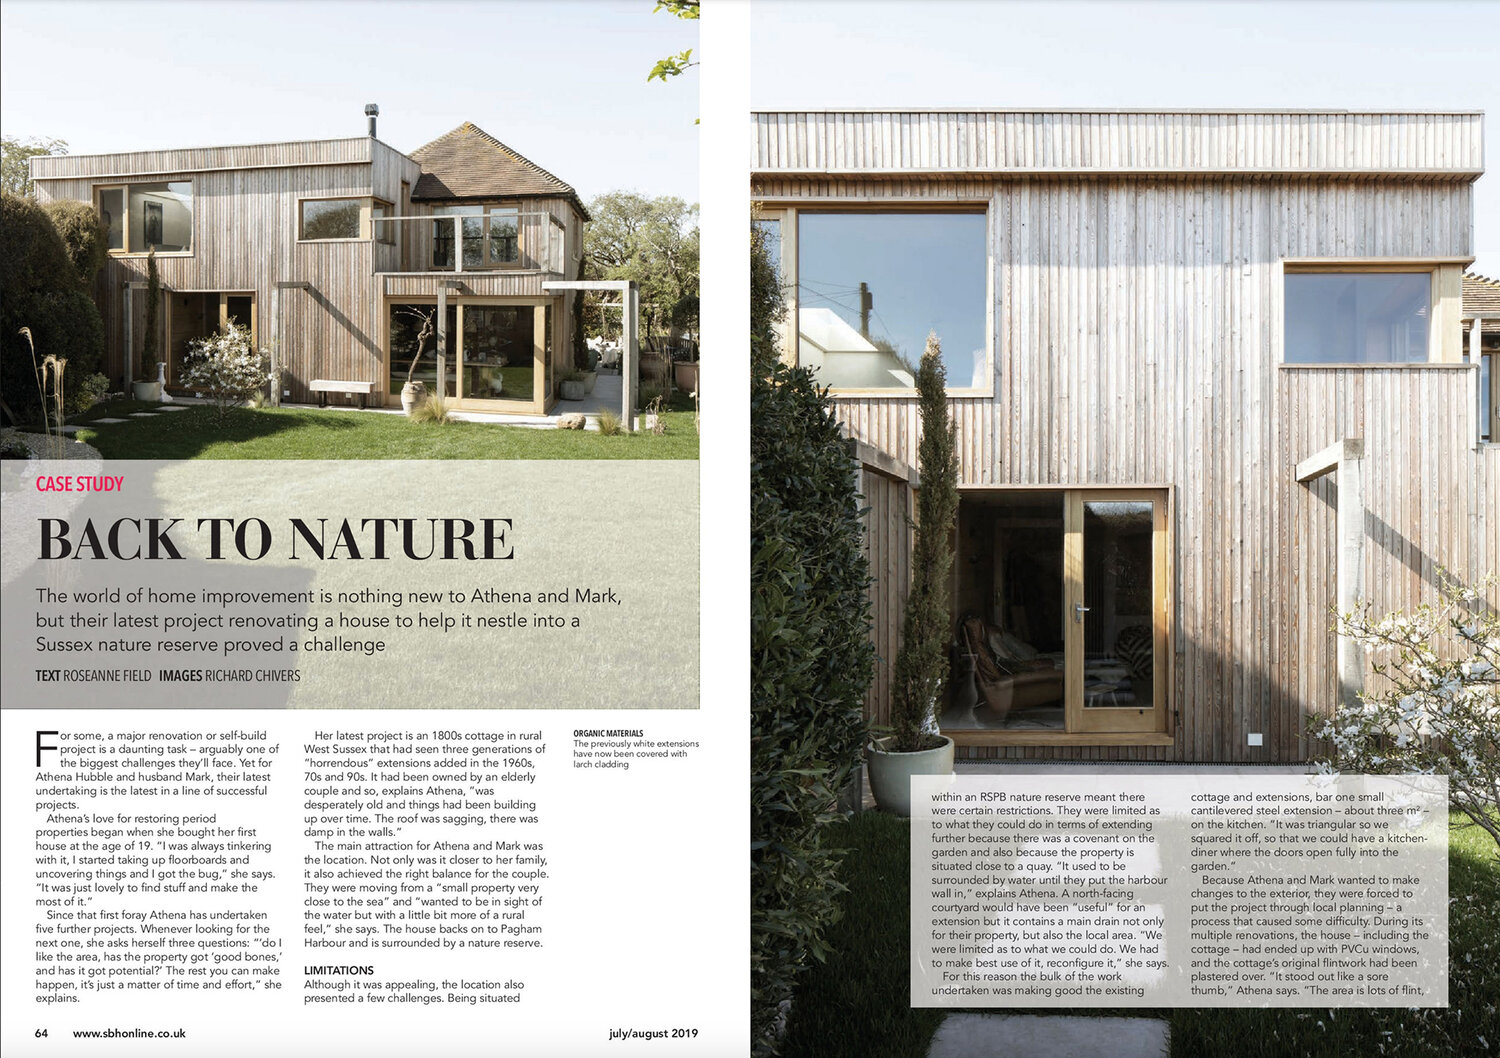 08.19 Island Cottage featured in Selfbuilder + Homemaker Magazine